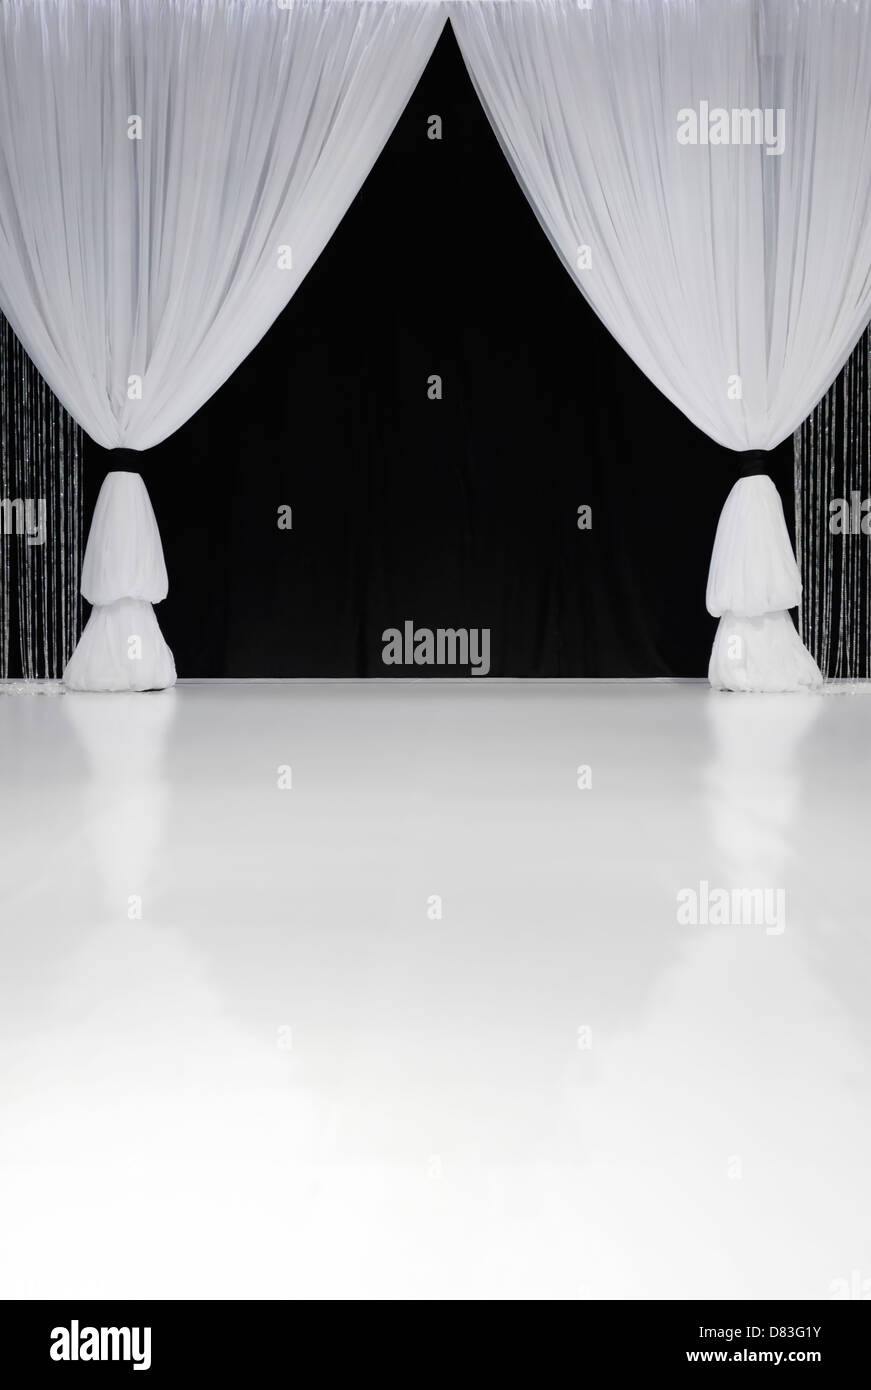 Black stage curtains black stage curtain - Stock Photo White Stage Curtains Over Black Curtains In The Background